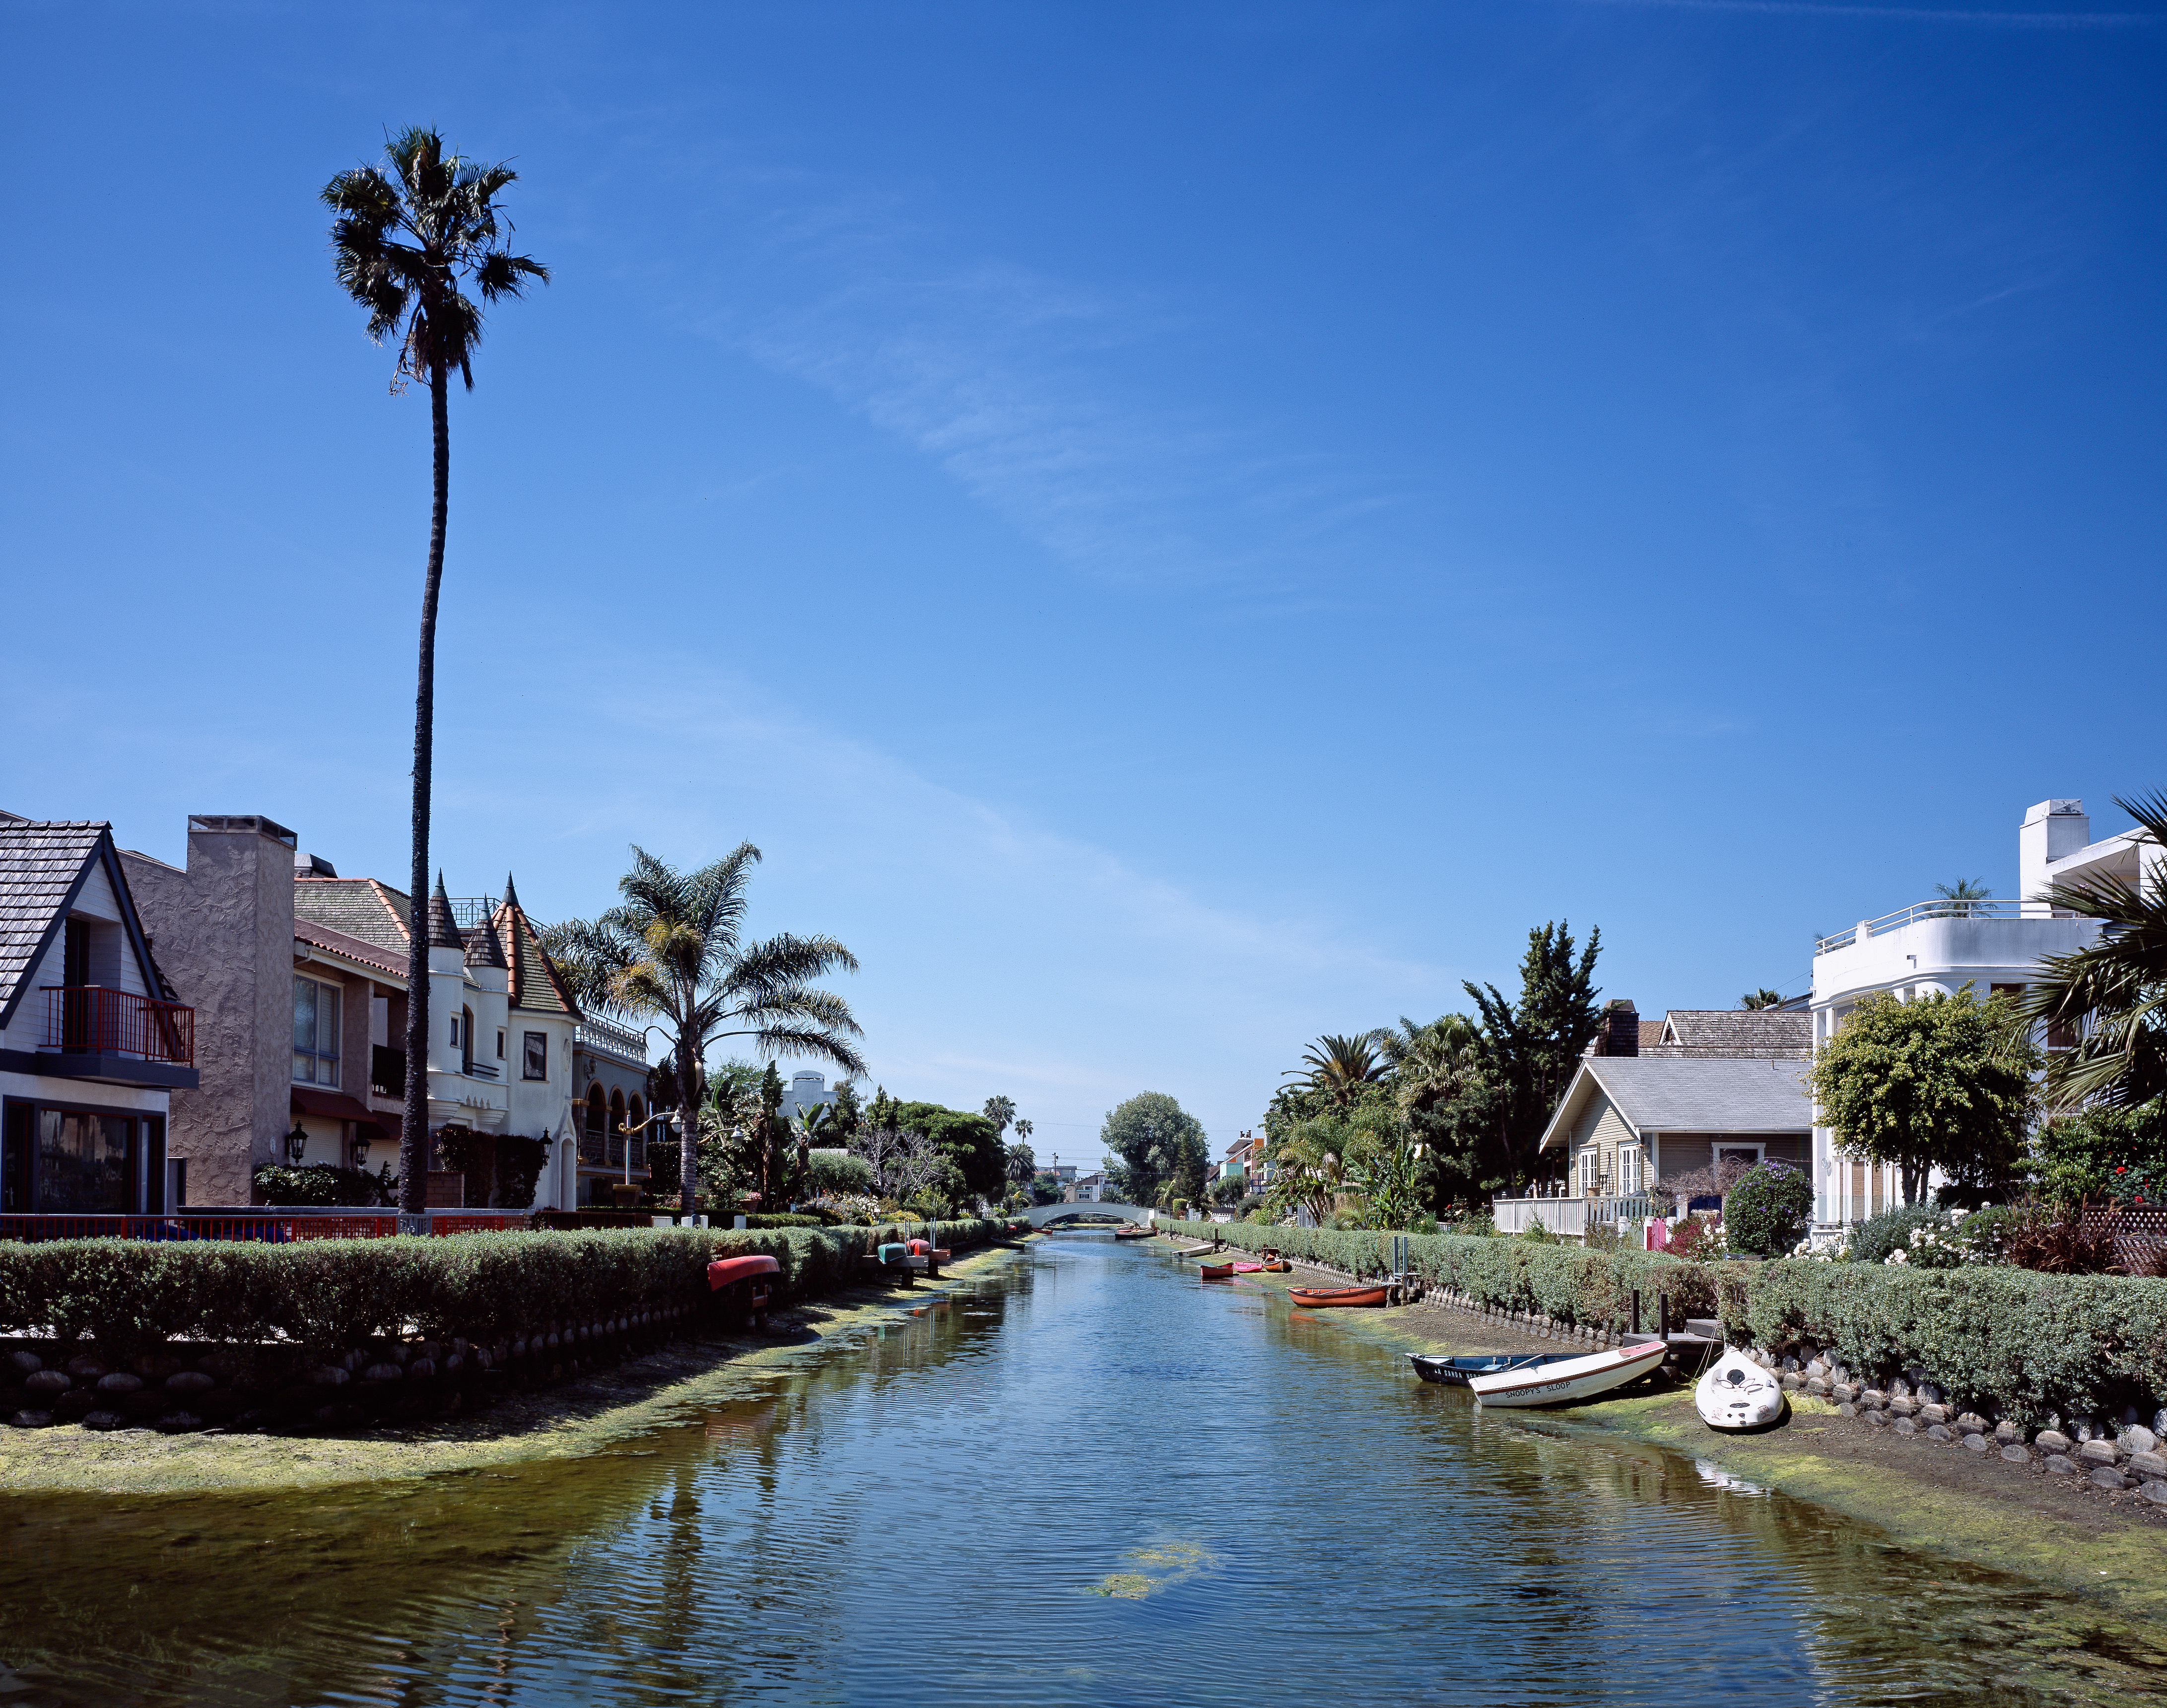 The canals were modeled after those in Italy's Venice